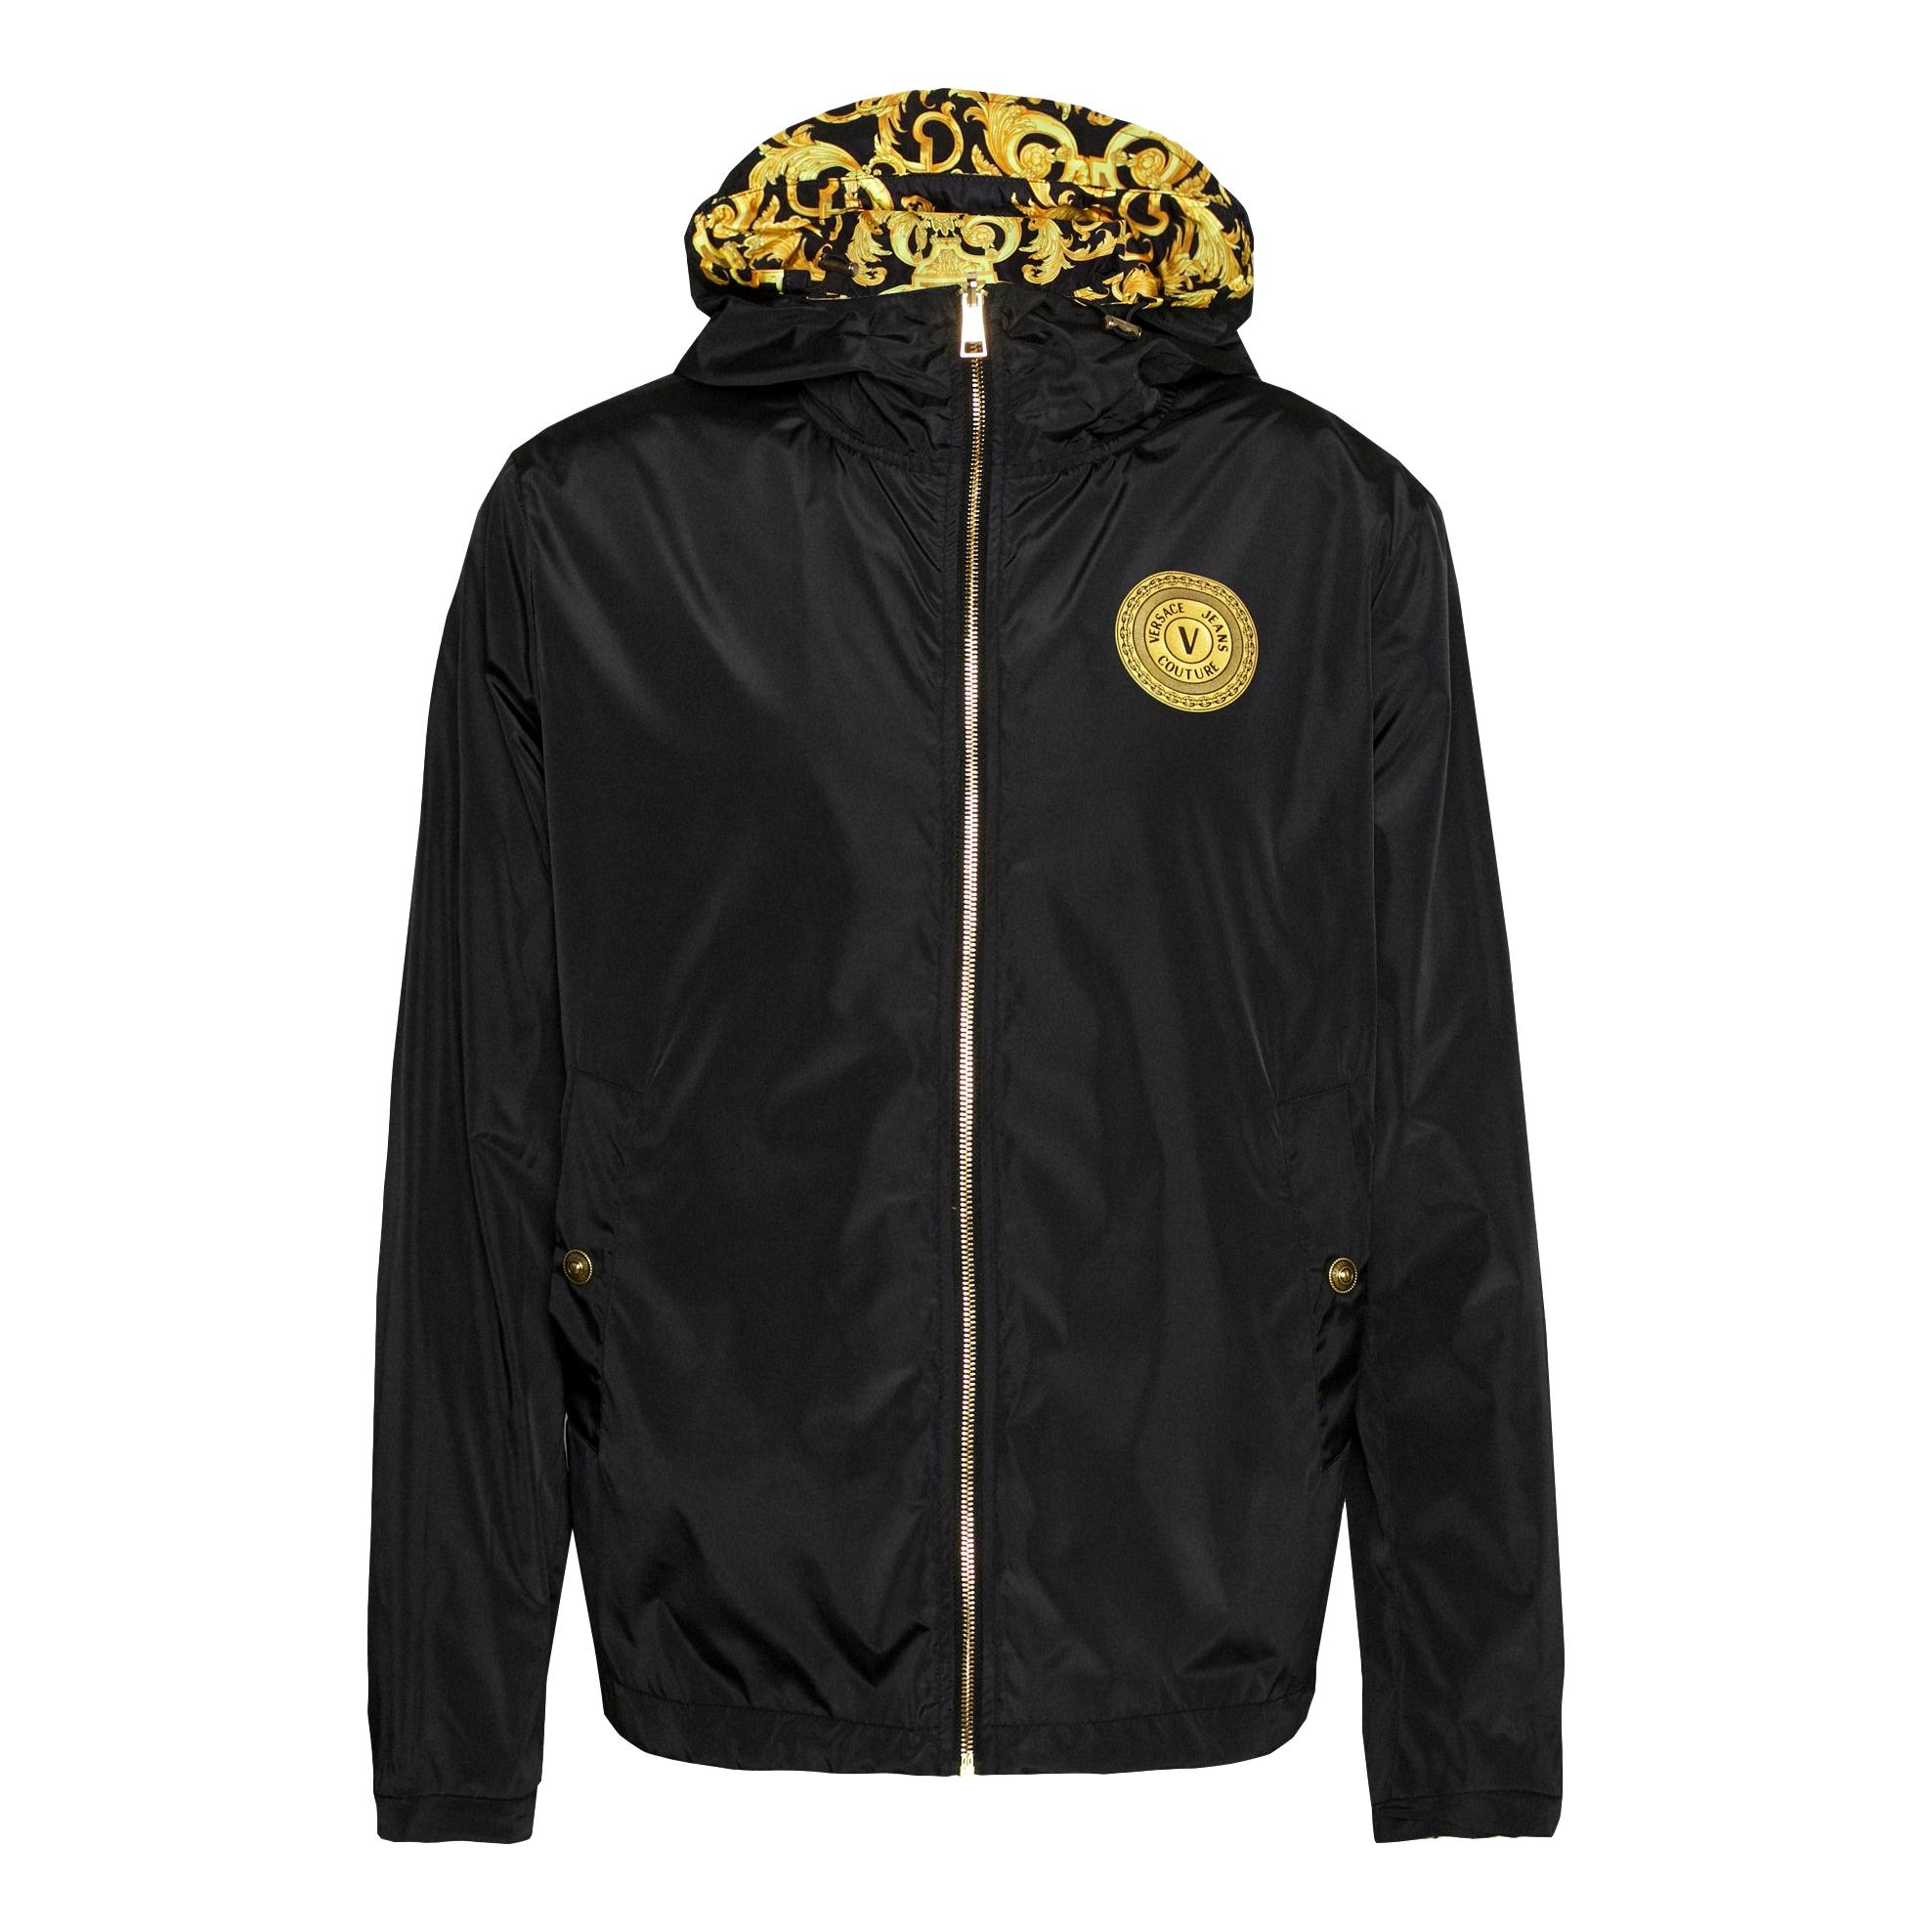 Barocco-print zip-up hooded jacket VERSACE JEANS COUTURE |  | C1GWA9B8 25193K42